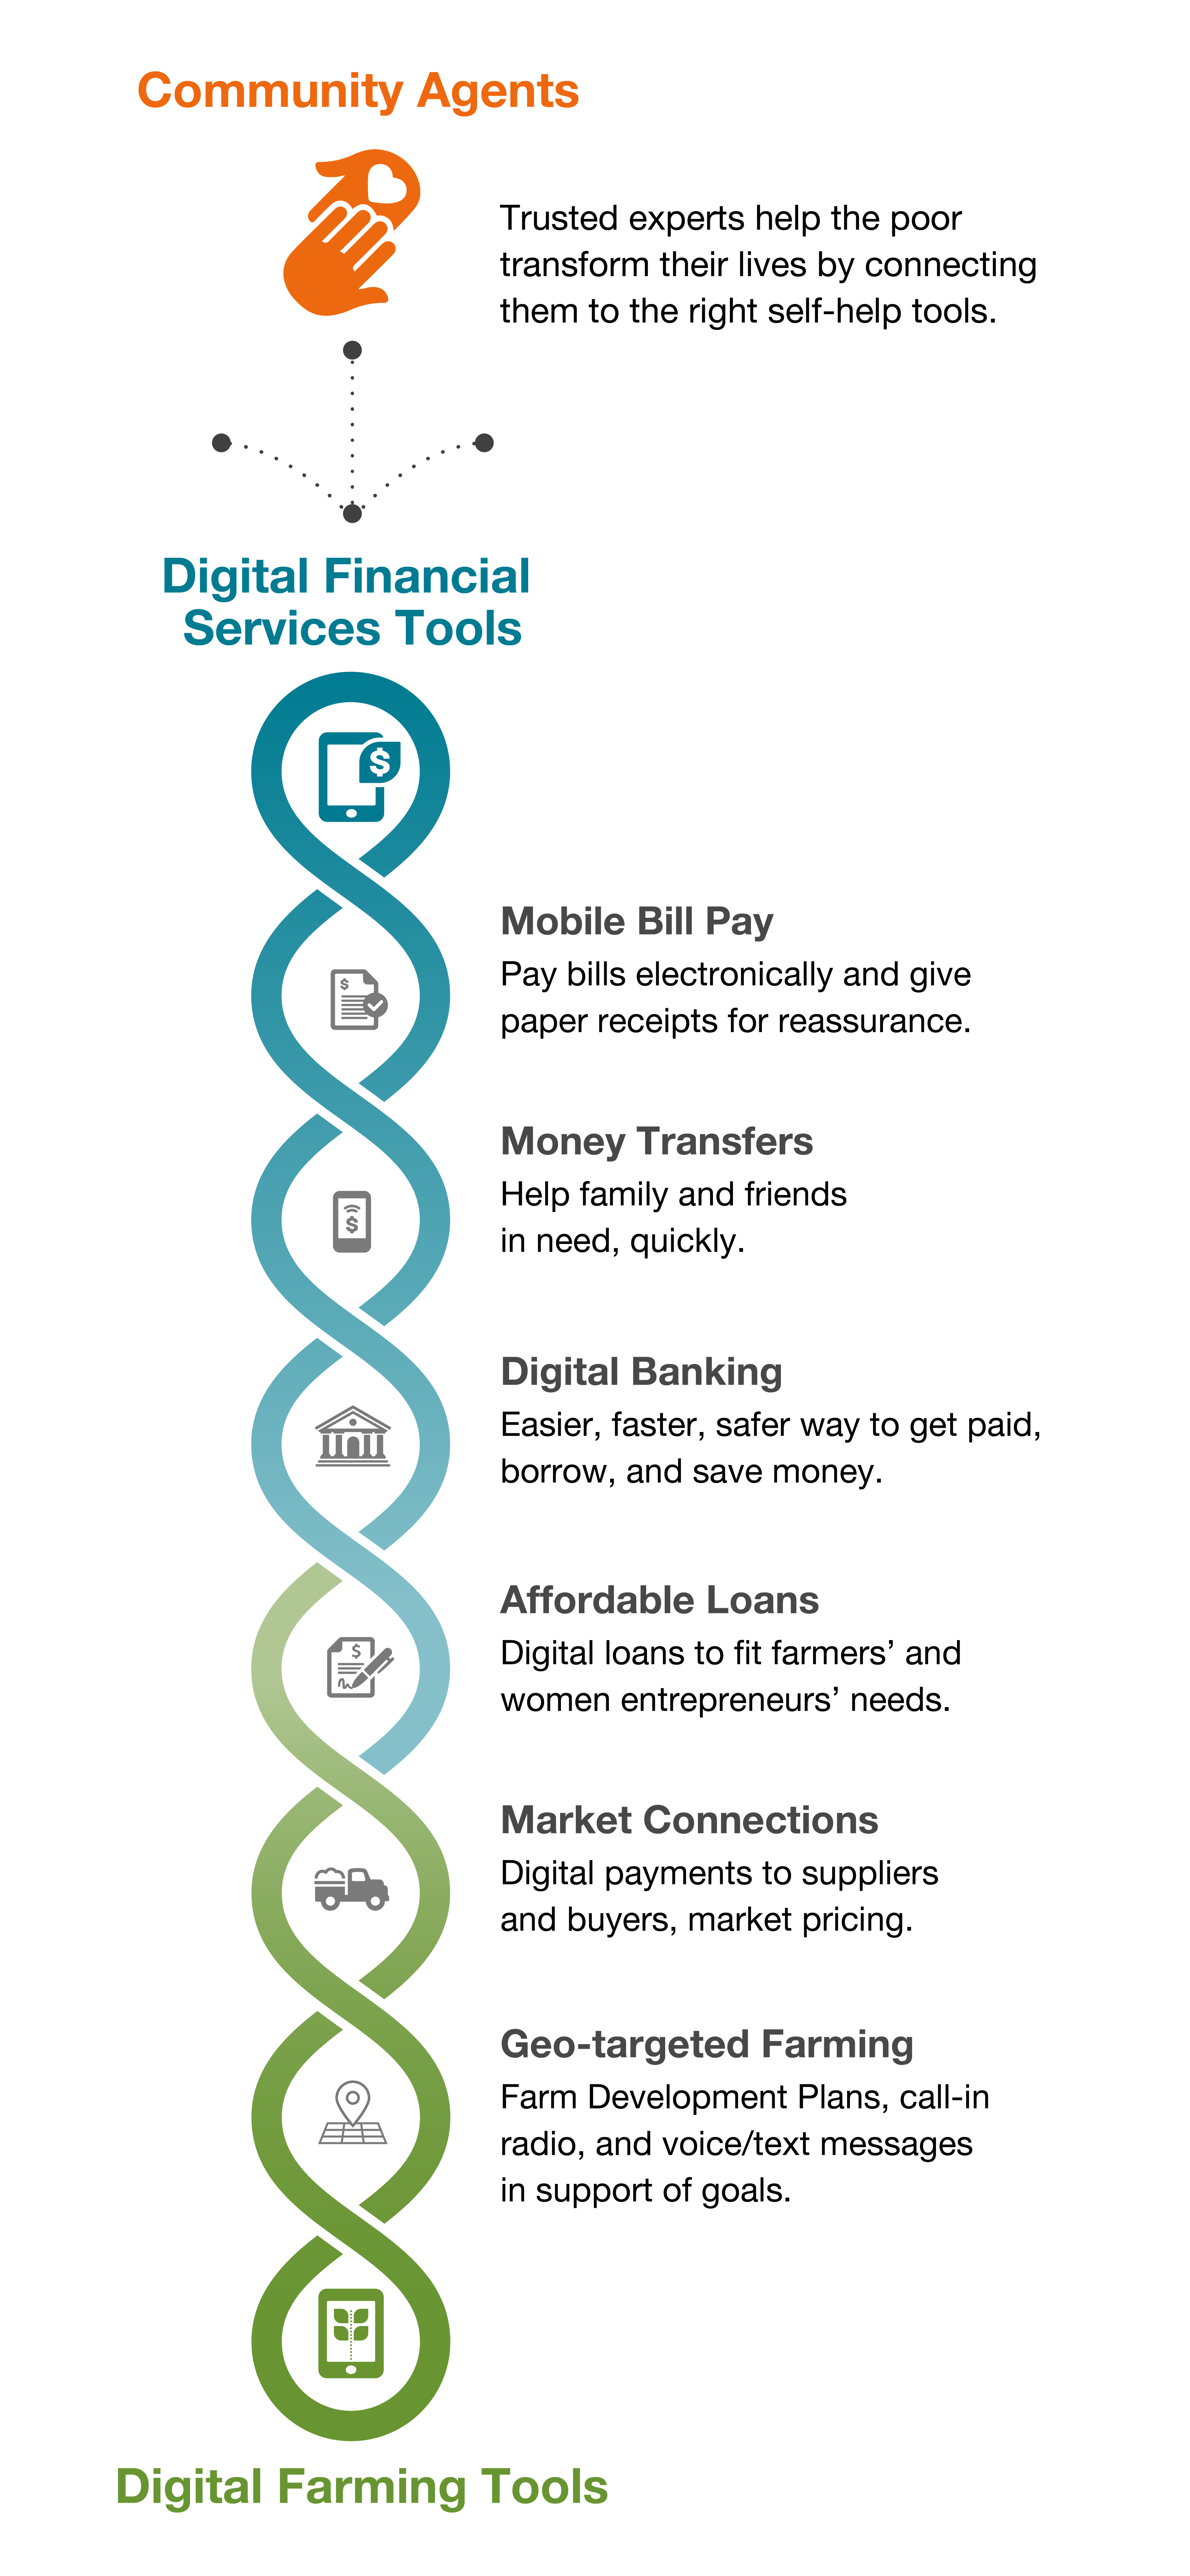 Diagram of how Grameen Community Agents connect the poor to Mobile Money and Digital Farming tools